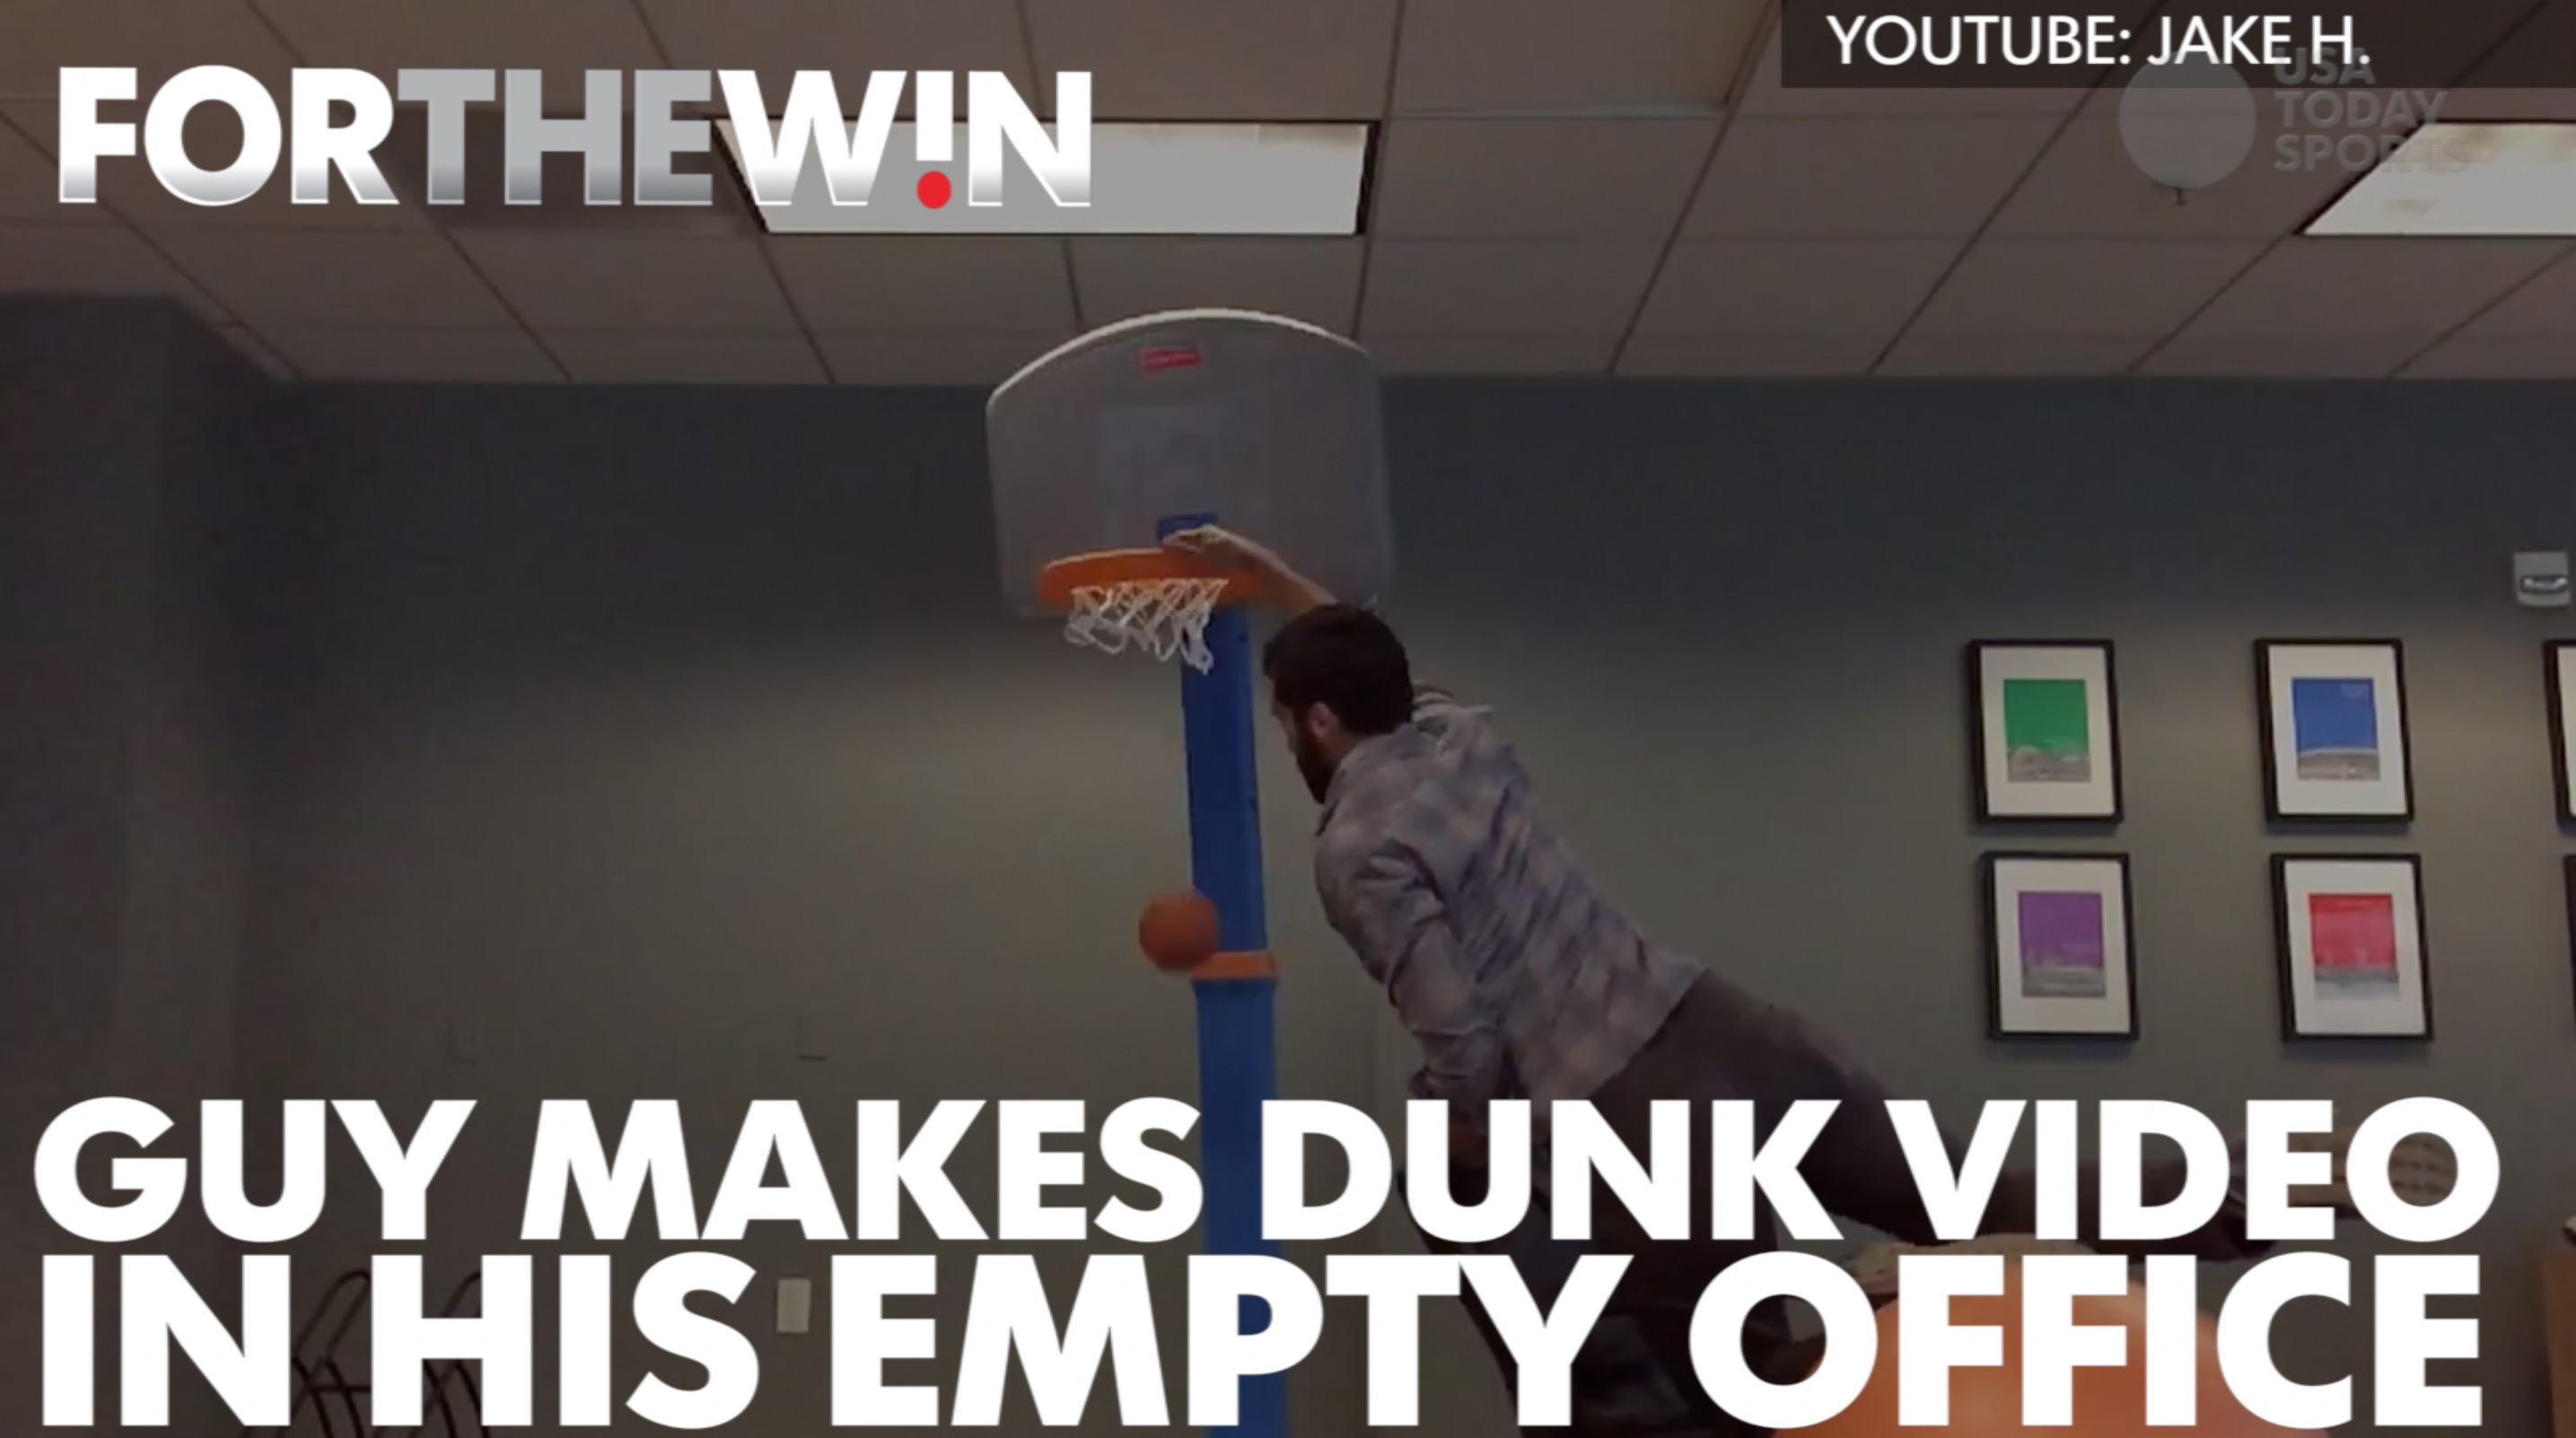 Guy turns empty office into a dunk highlight video after layoffs